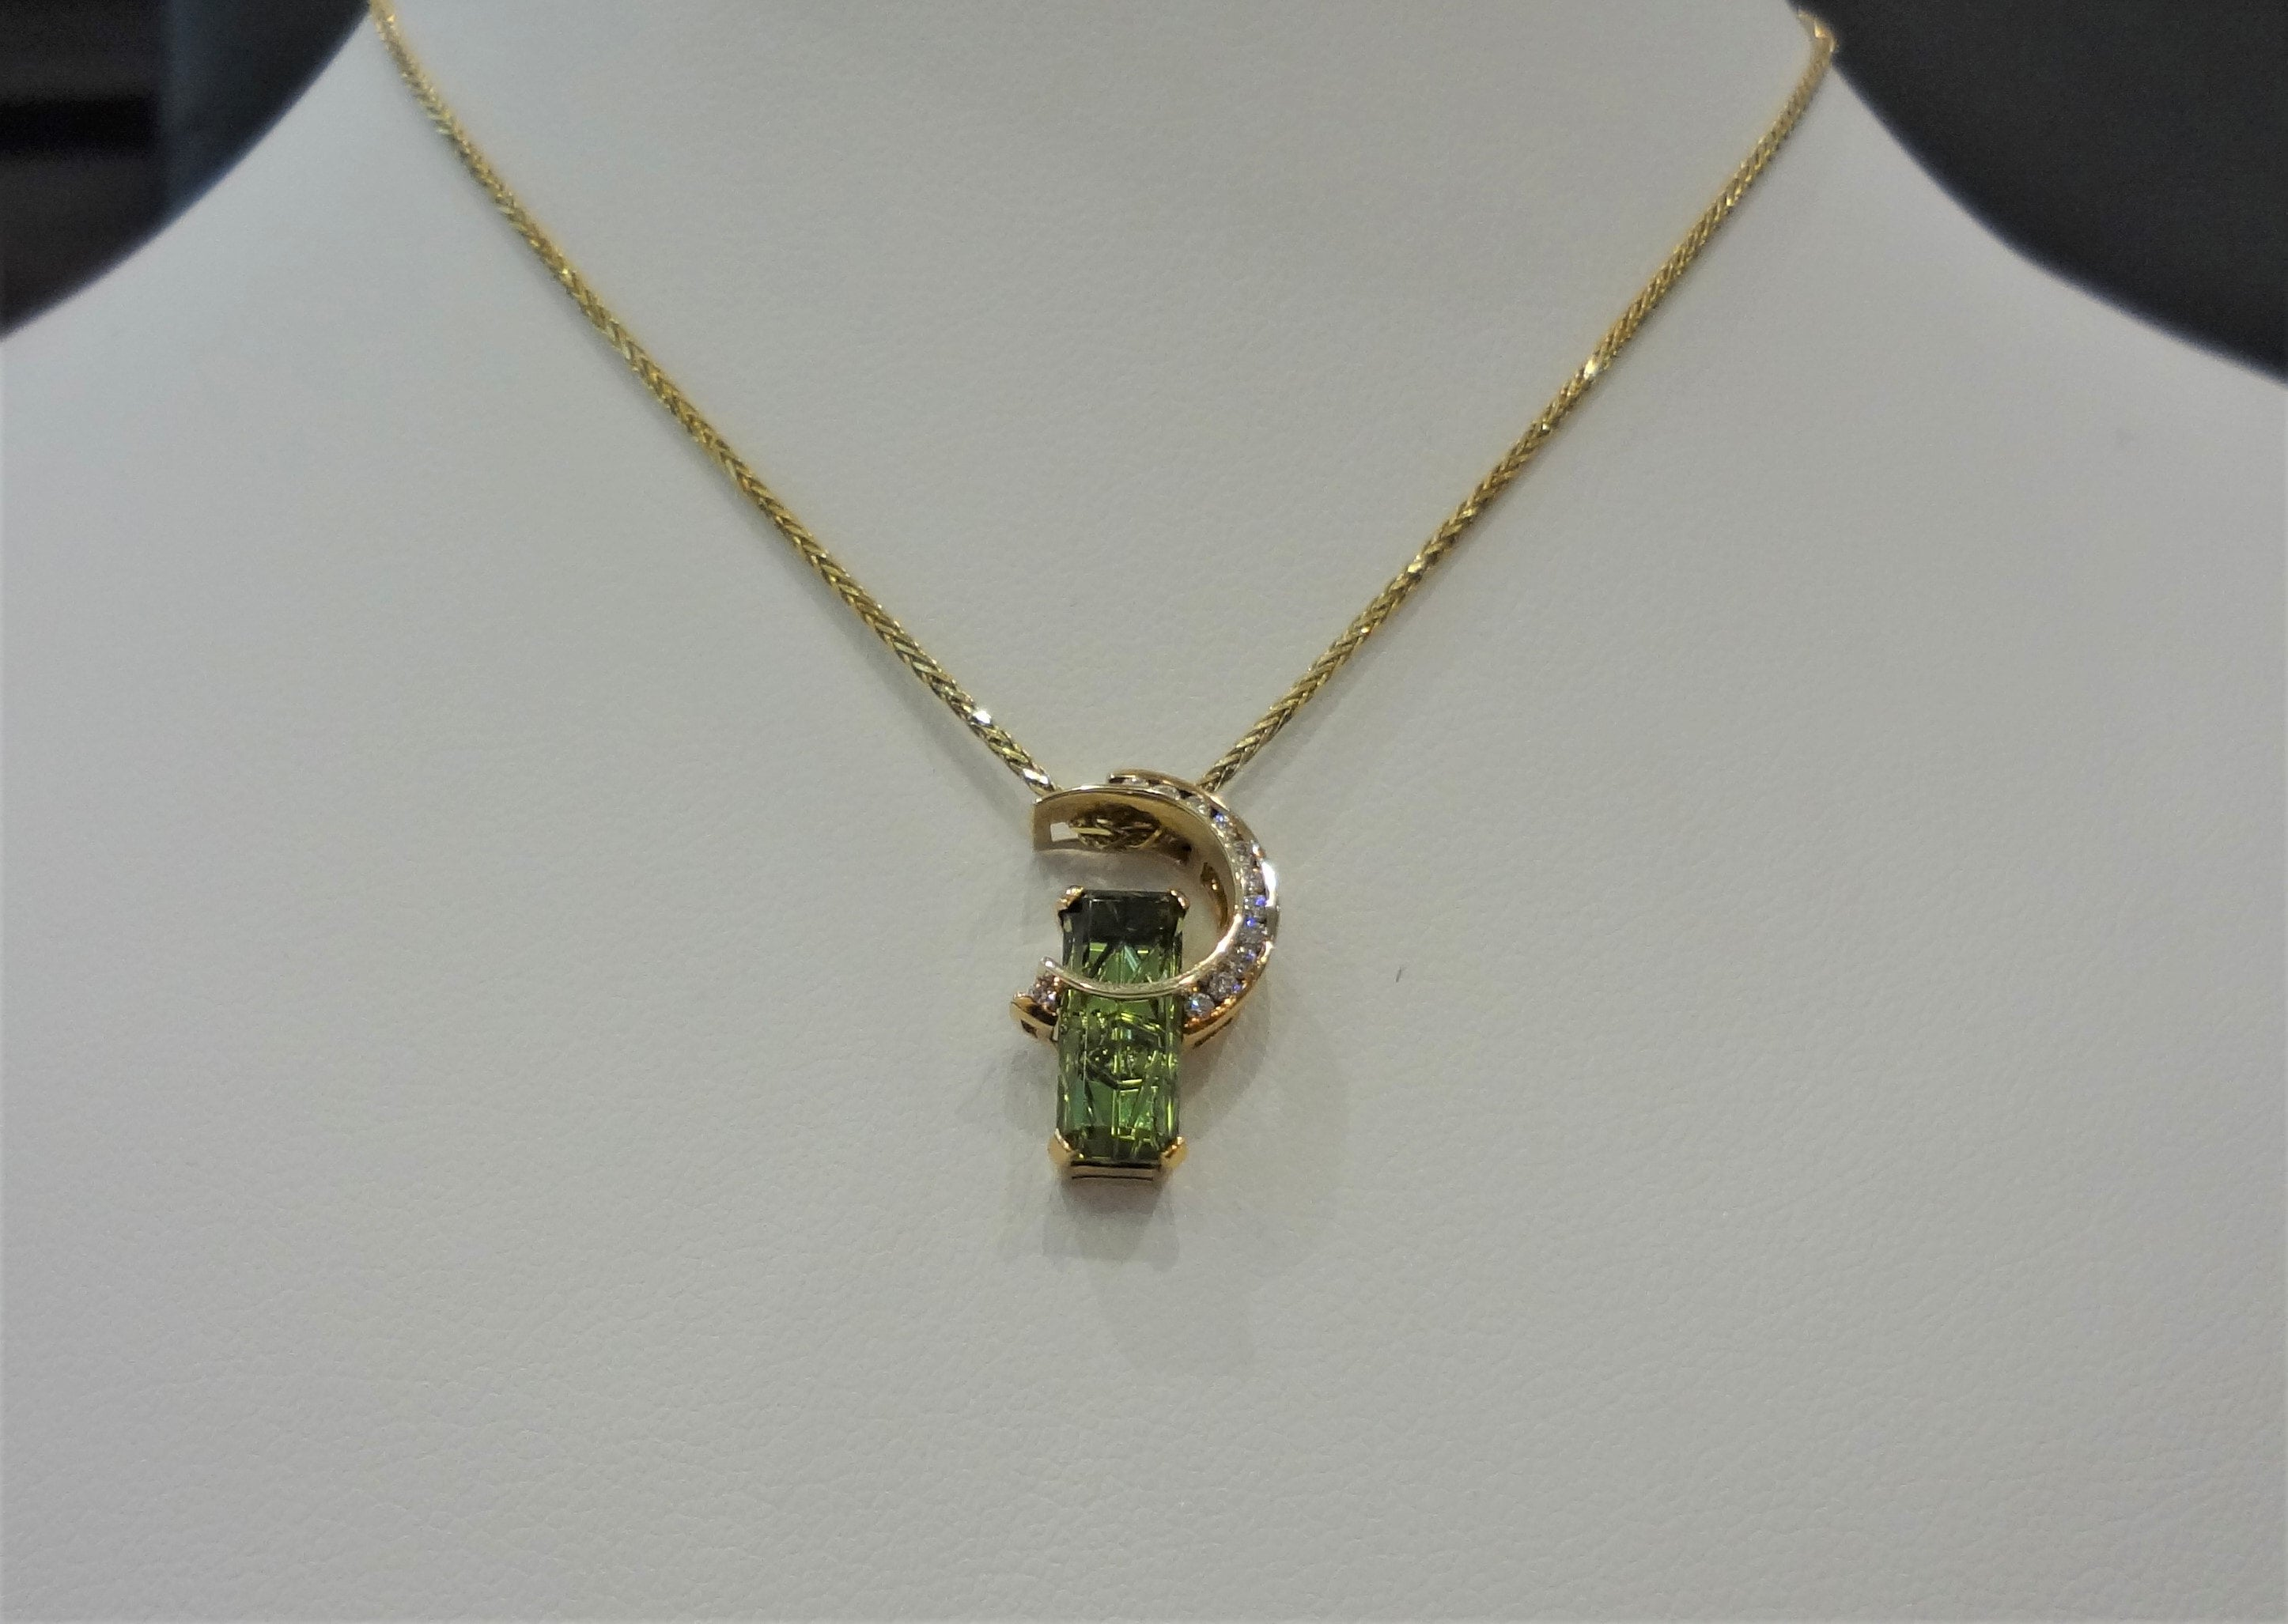 Green Tourmaline and Diamonds Pendant